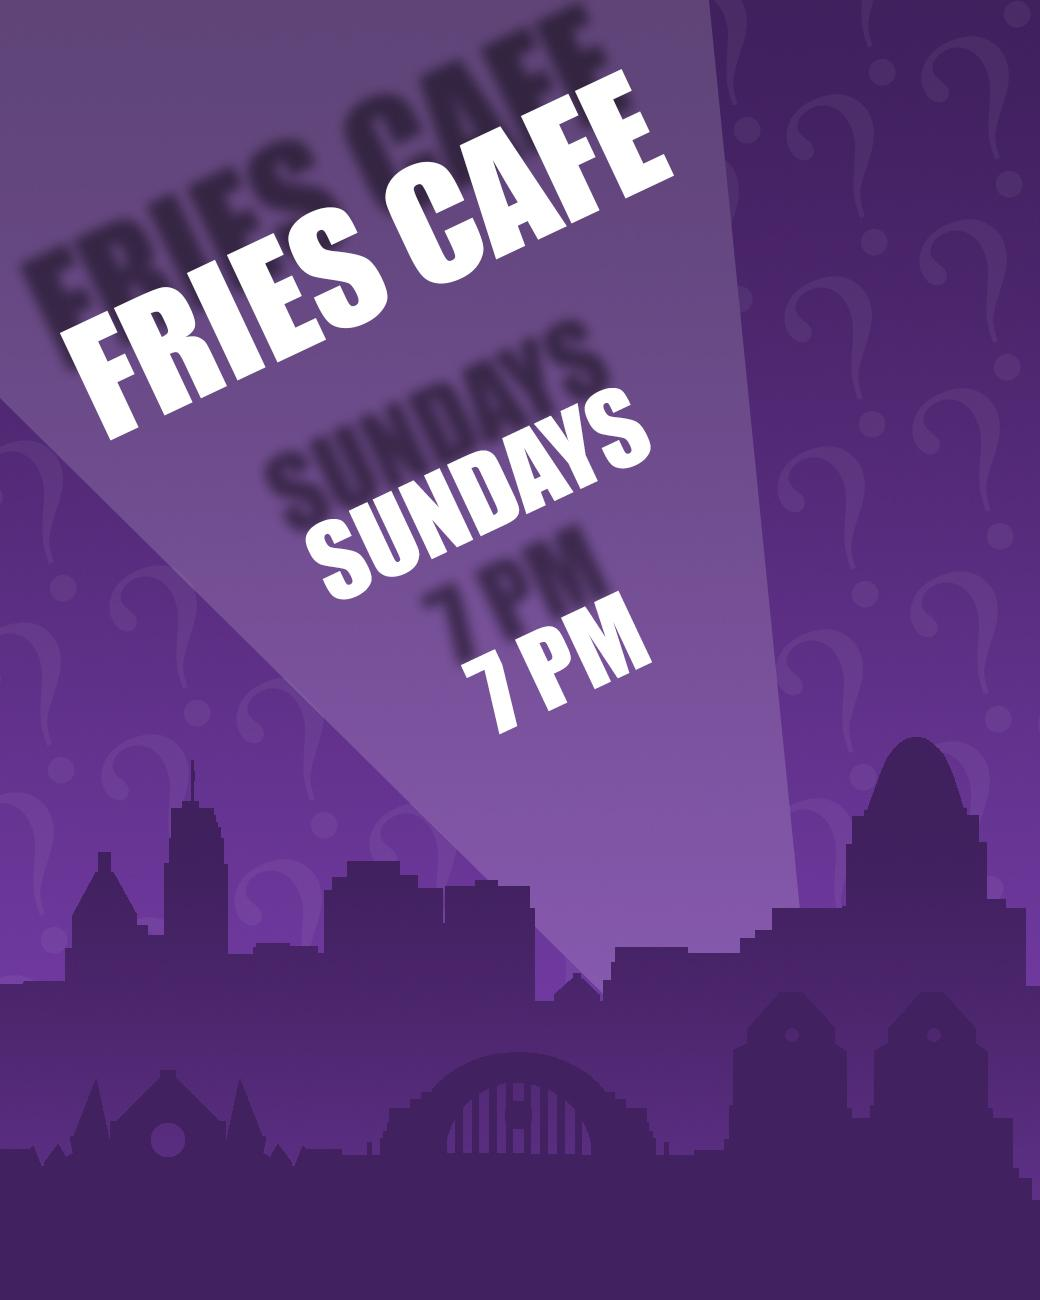 Fries Cafe has trivia every Sunday starting at 7 PM. ADDRESS: 3247 Jefferson Ave (45220) / Image: Phil Armstrong, Cincinnati Refined // Published: 8.30.17